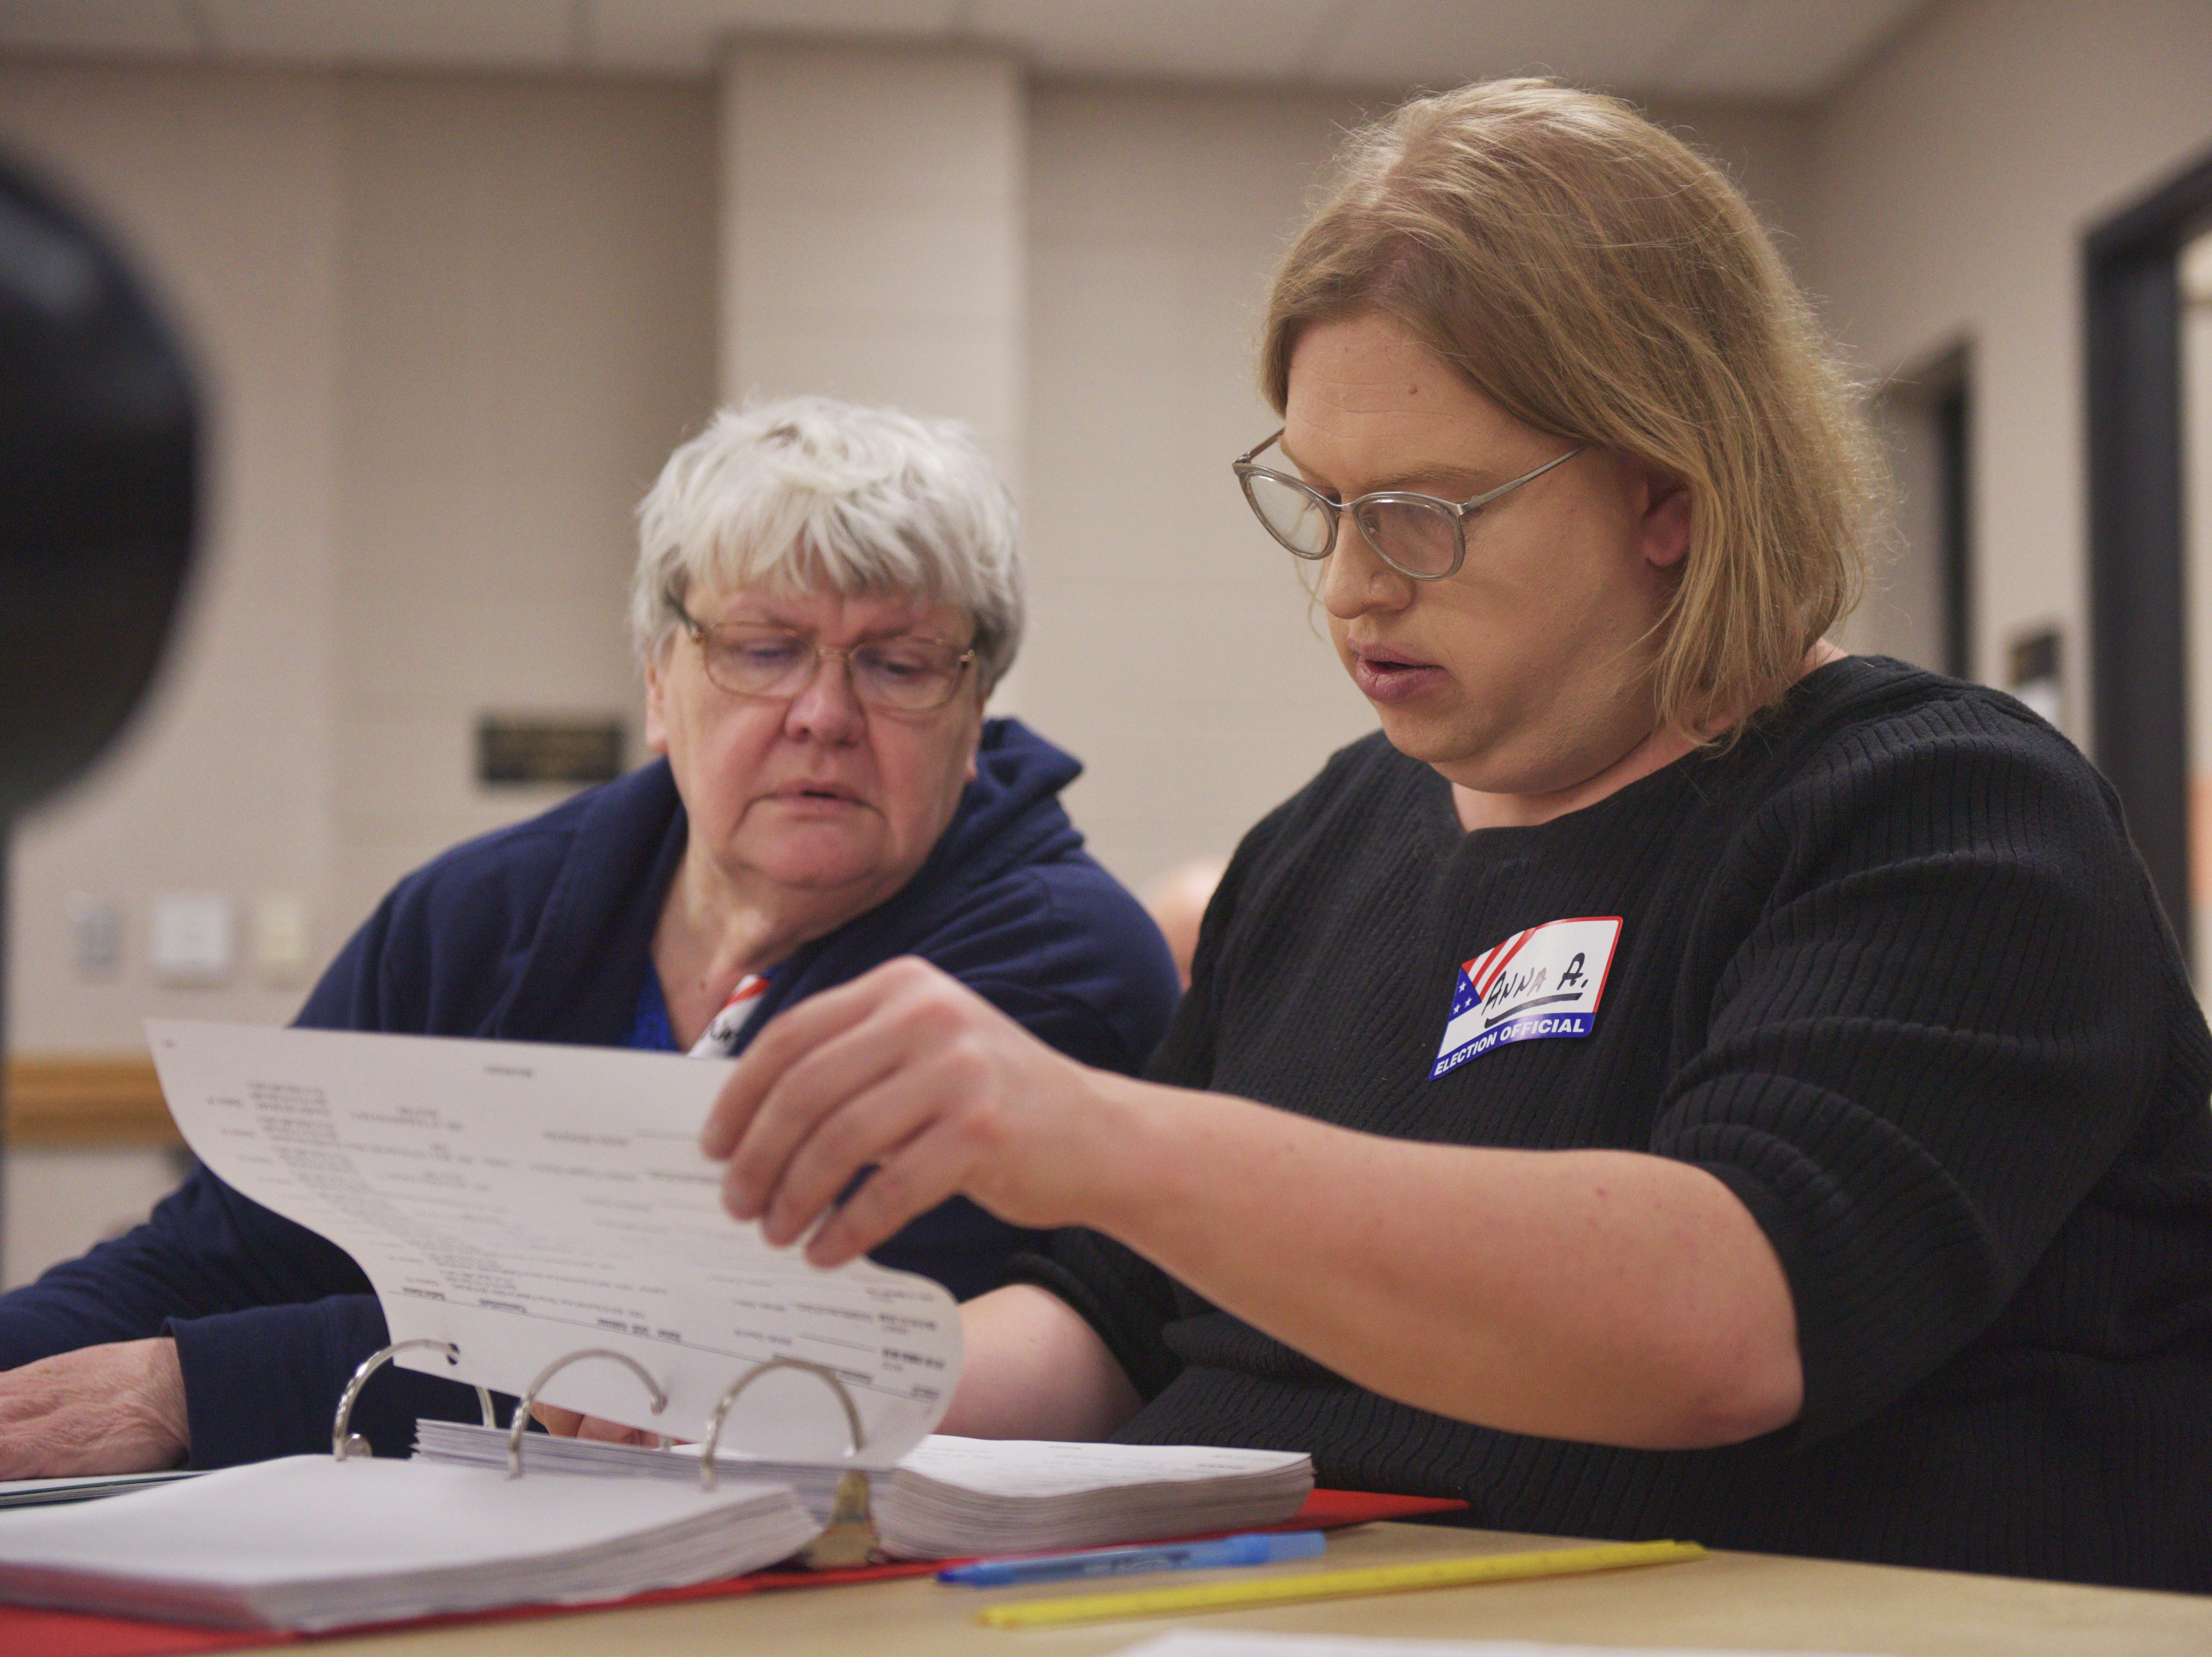 Poll workers Anna Amundson and Natalie Lavender looks up a voter as they walk into the polling place for the 2018 midterm elections Tuesday, Nov. 6, at First Lutheran Church in Sioux Falls.